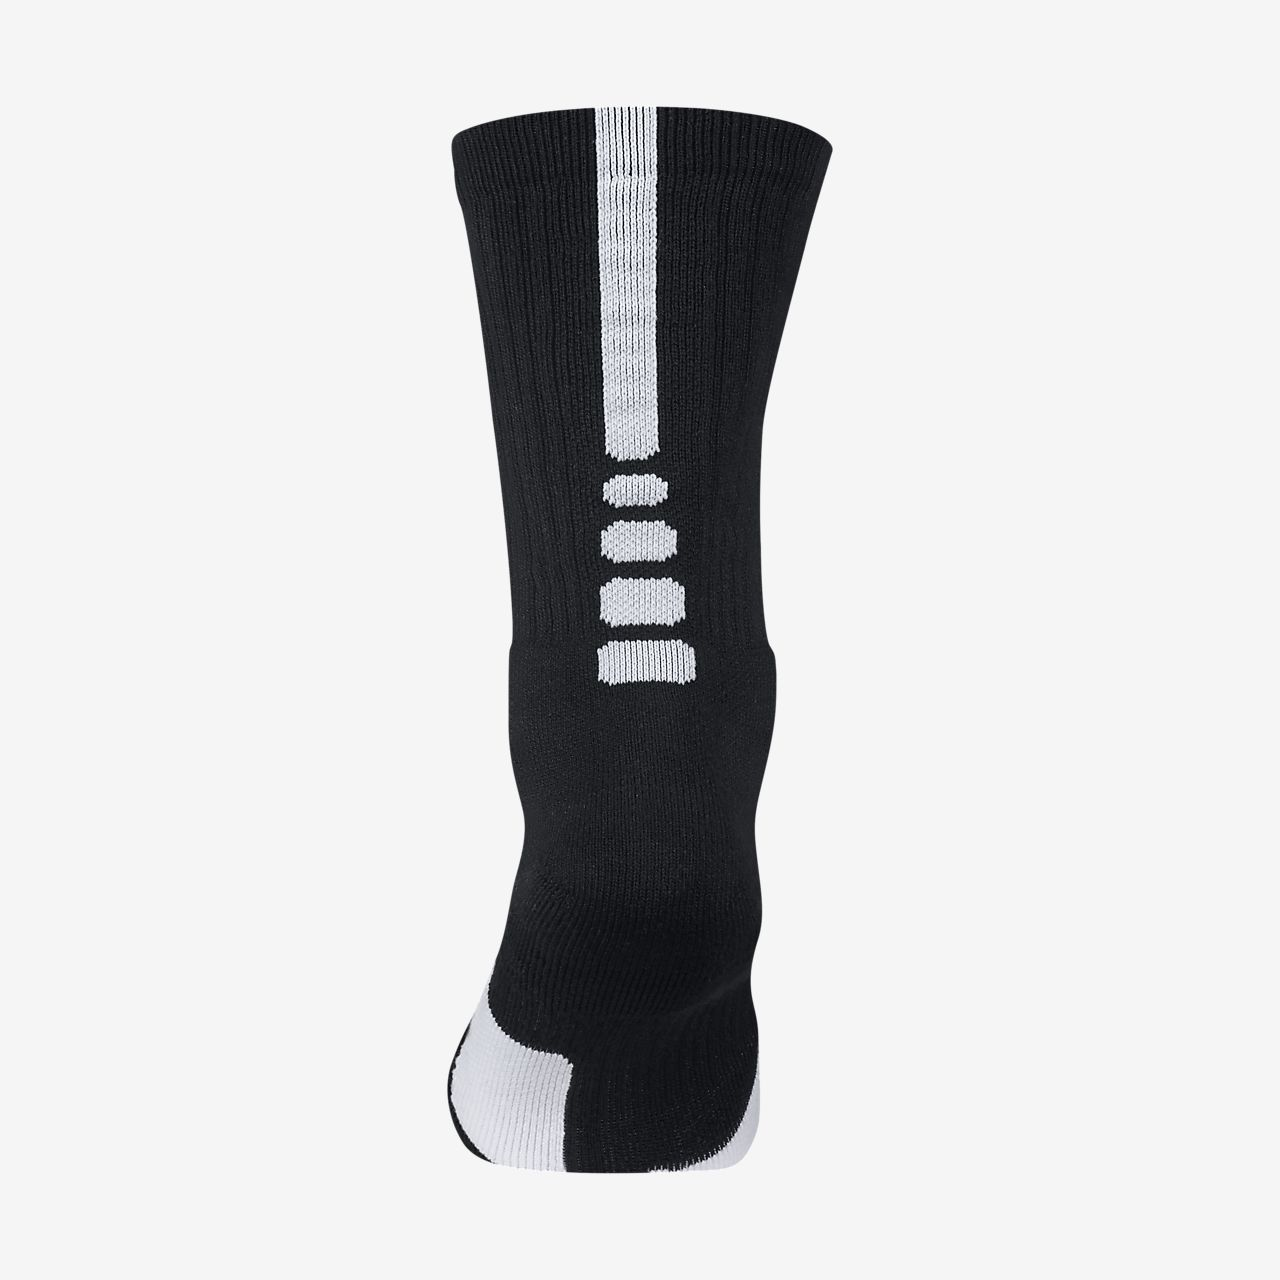 low priced fe78e 7dfa5 Calcetines de básquetbol Nike Dry Elite 1.5 Crew. Nike.com MX